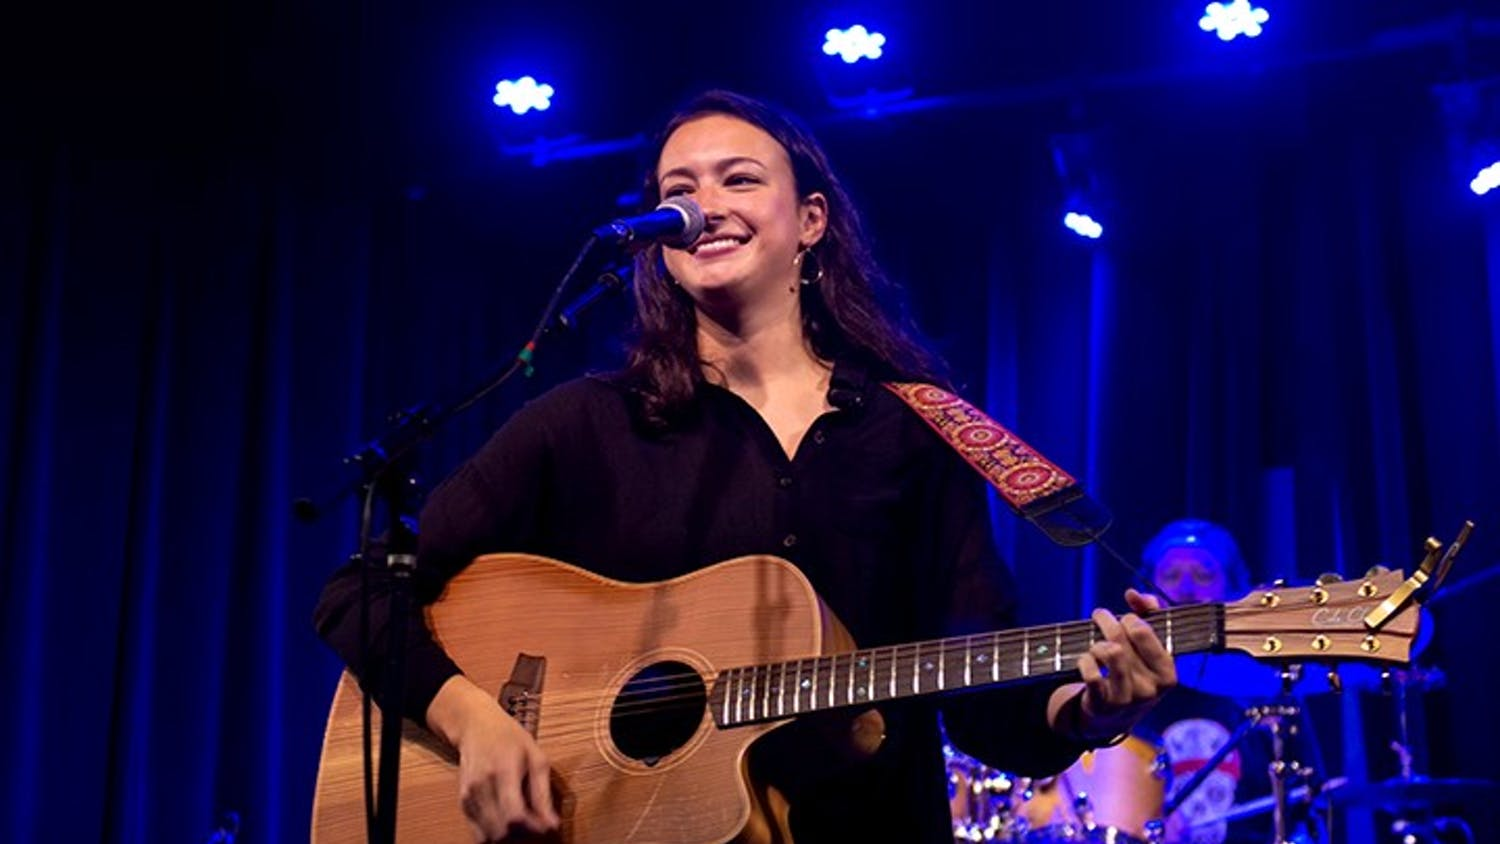 """Mia Green performed in July 2018 at Isis Music Hall in Asheville, North Carolina. The songs she performed were released on her """"Paper Days"""" album."""